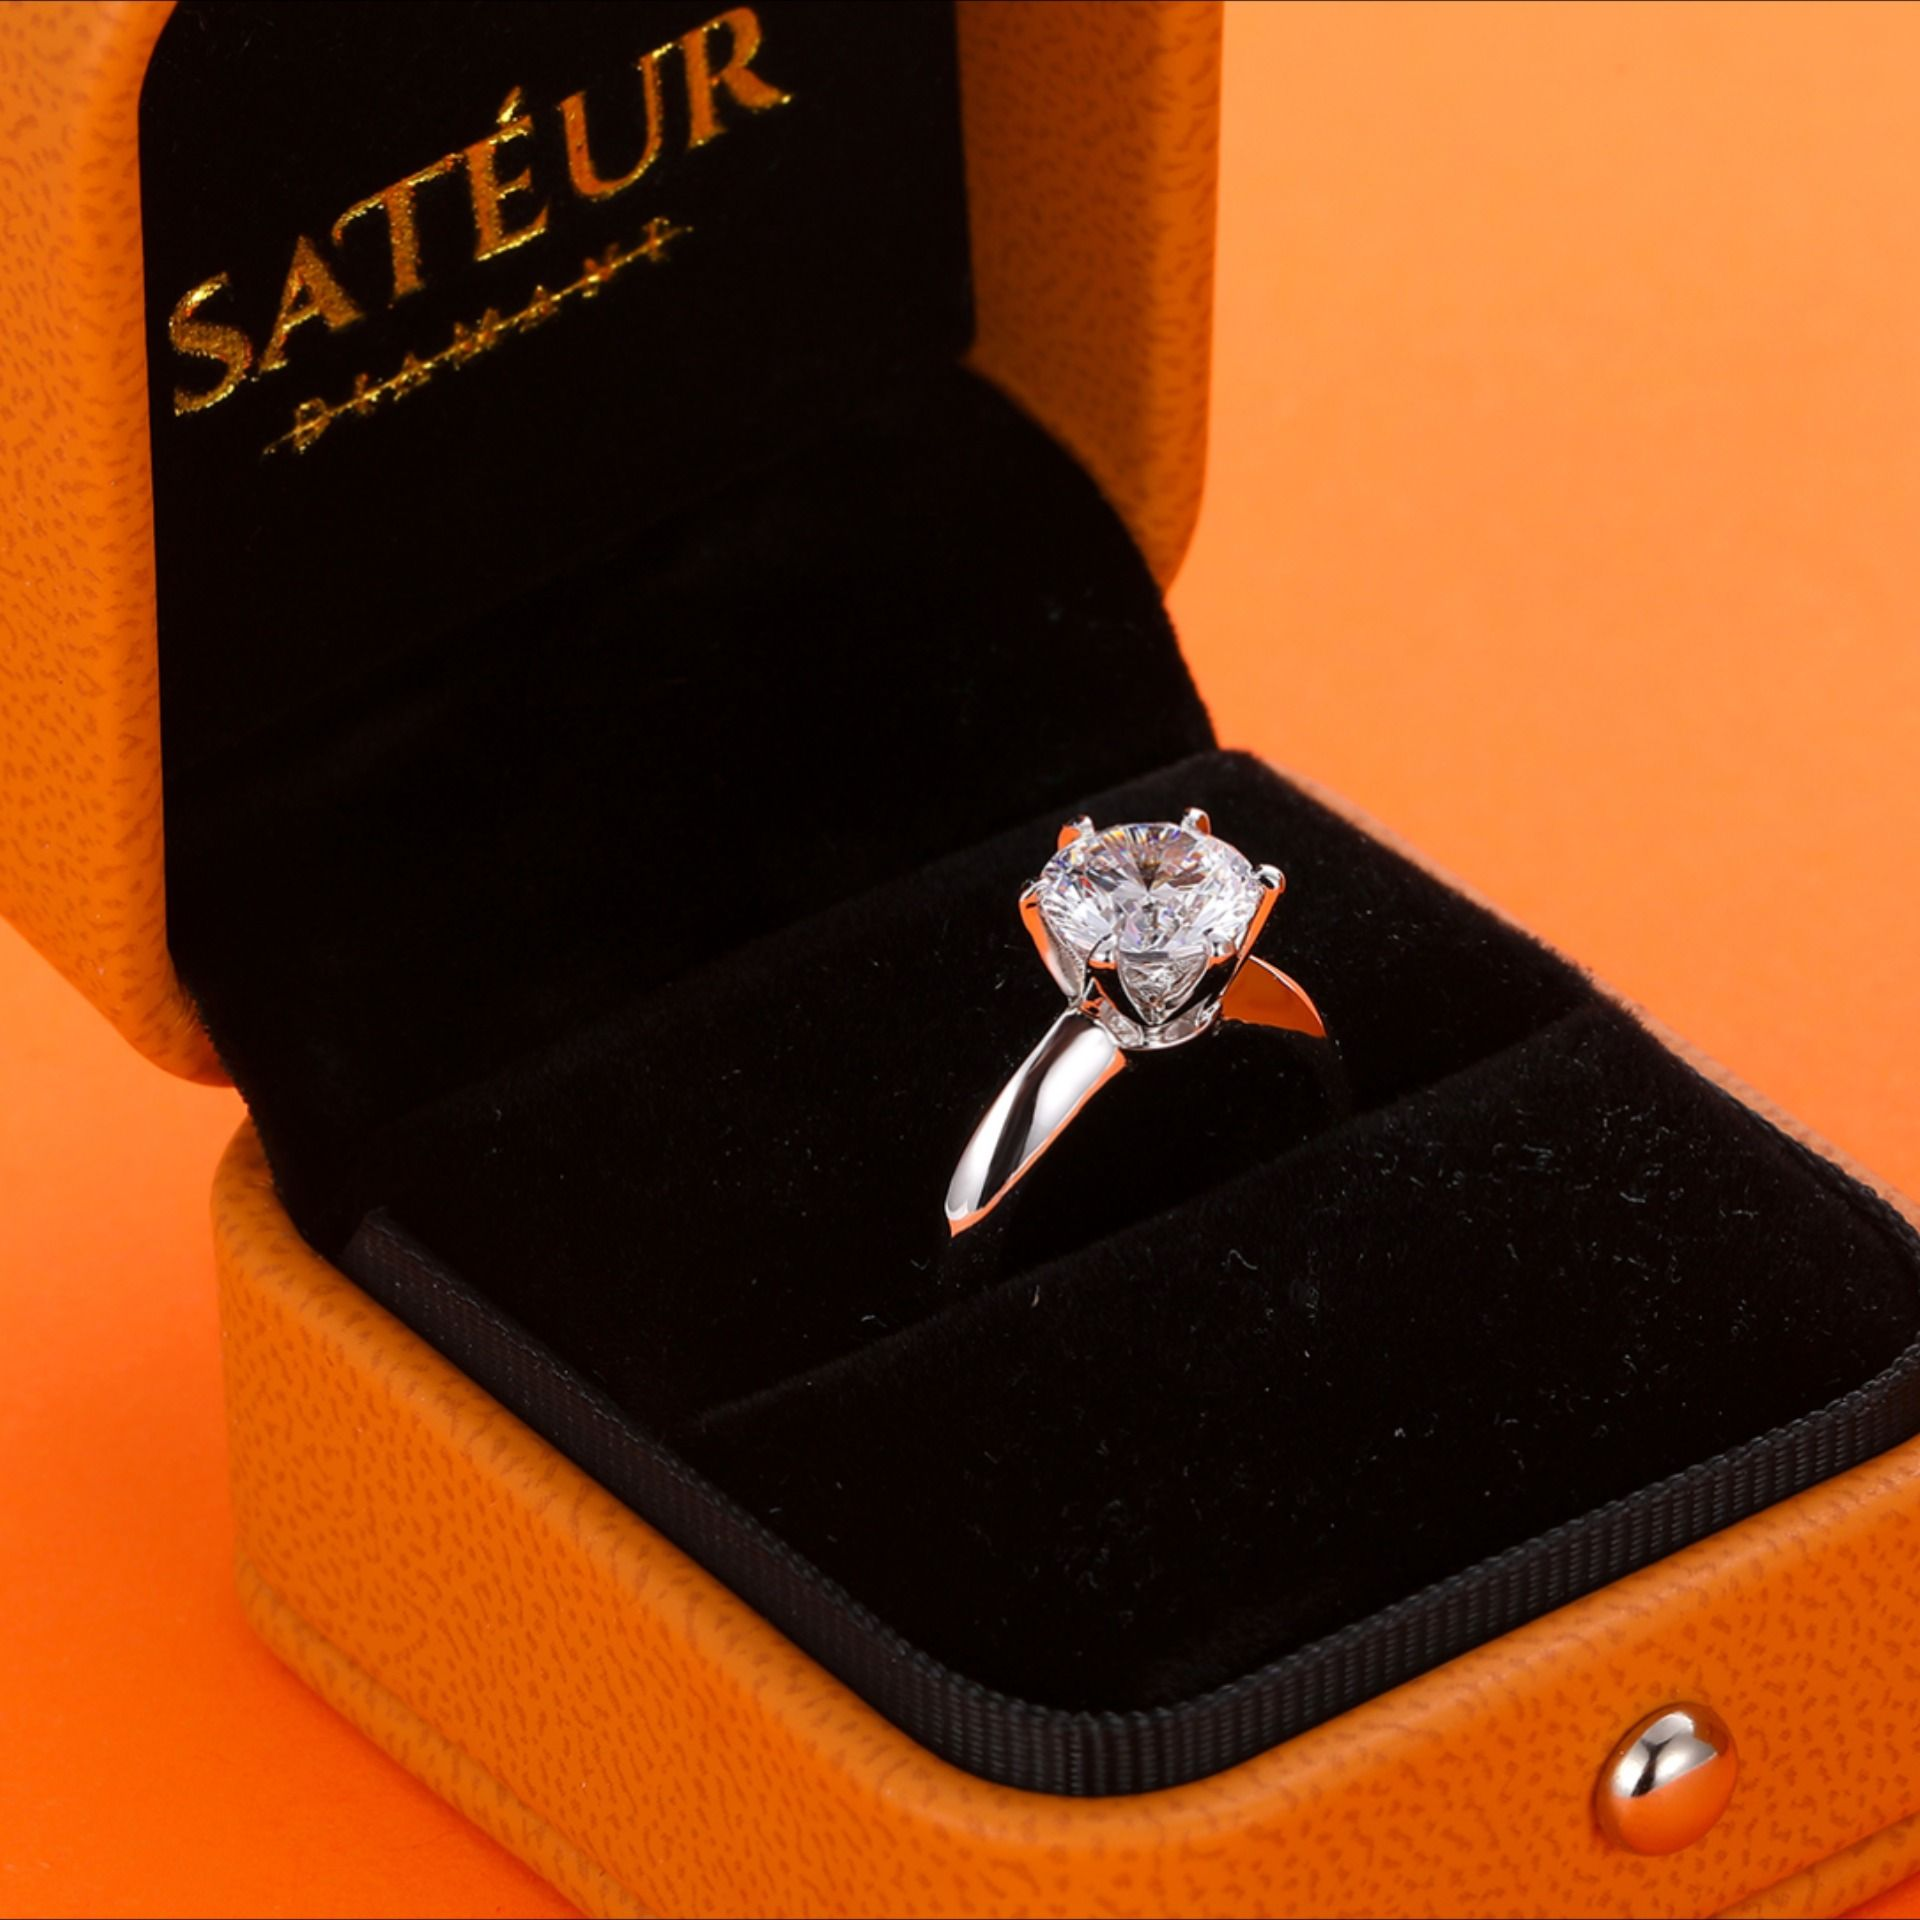 Sateur Destinee Ring It S Not Diamond It S Sateur Diamond Expensive Diamond Premium Brands